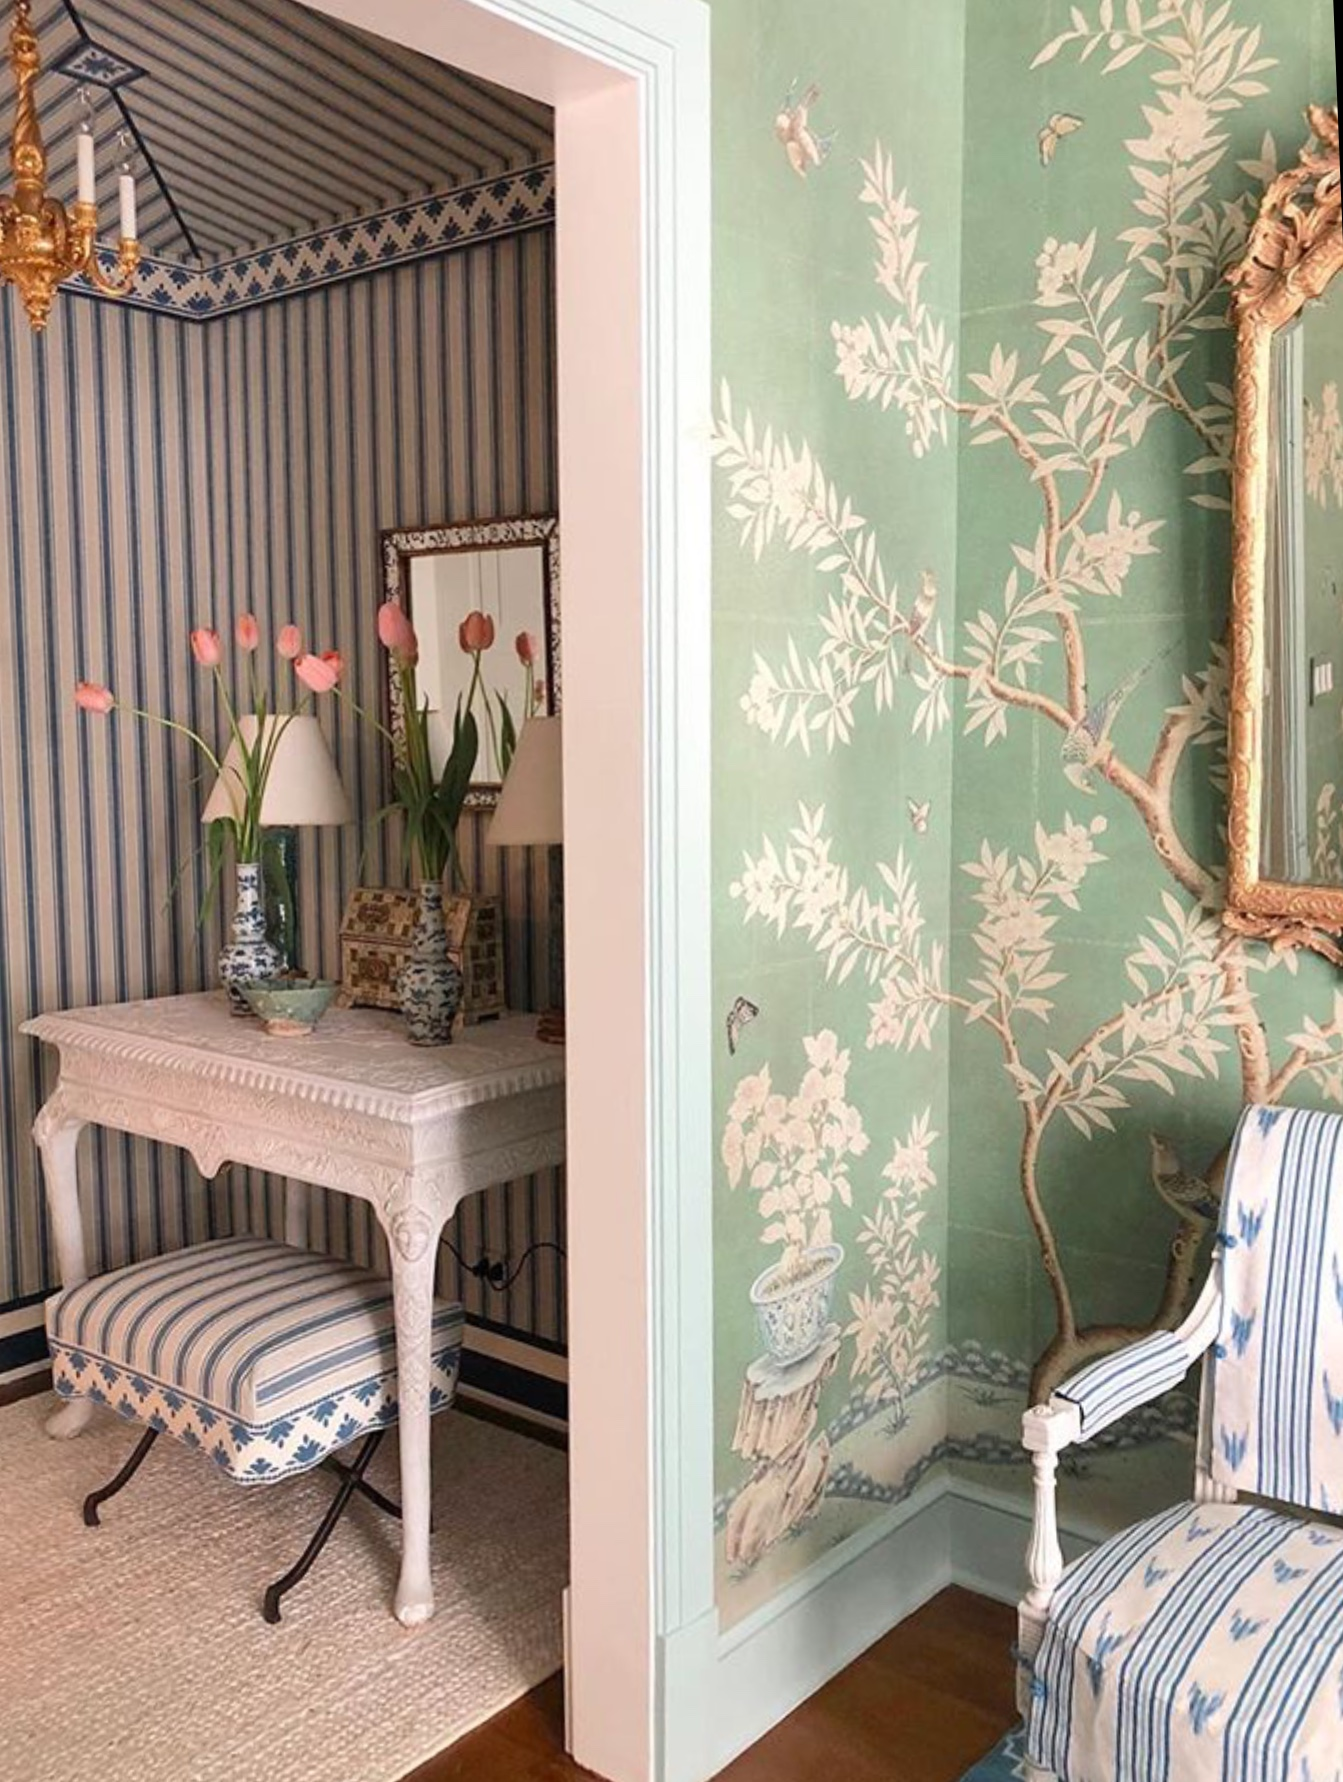 A sneak peek in to Mark D. Sikes space at the Kipps Bay Showhouse. Photo - Mark D. Sikes